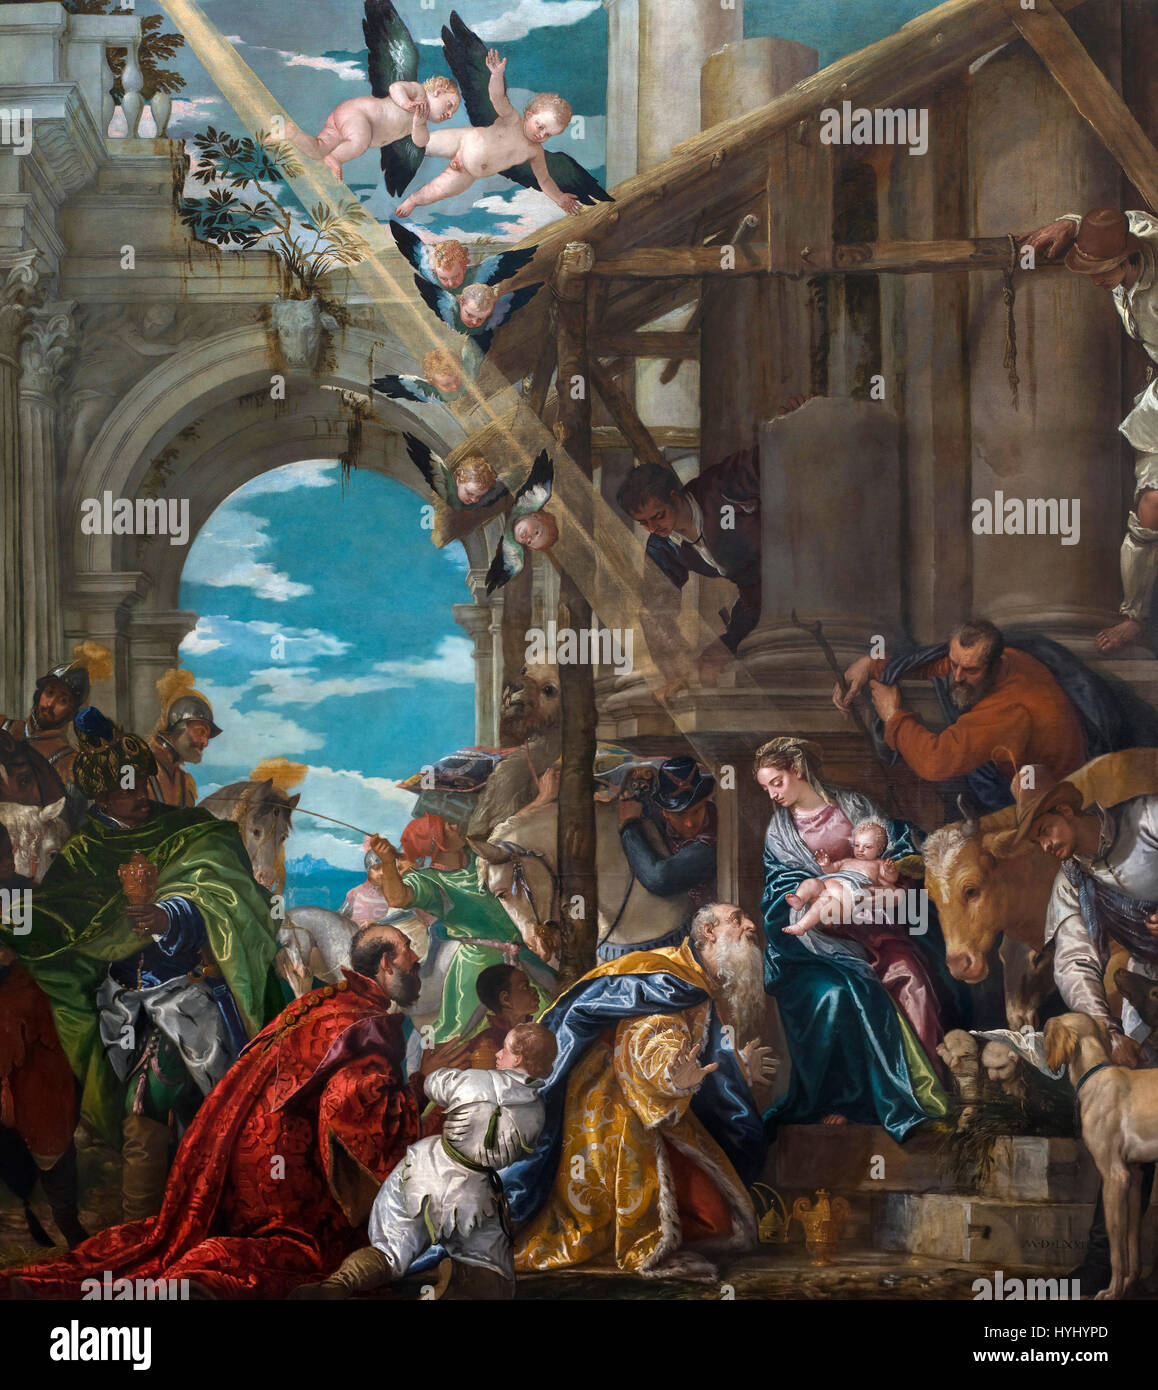 The Adoration of the Kings (Adoration of the Magi) by Paolo Veronese (c.1528-1588), oil on canvas, 1573. - Stock Image